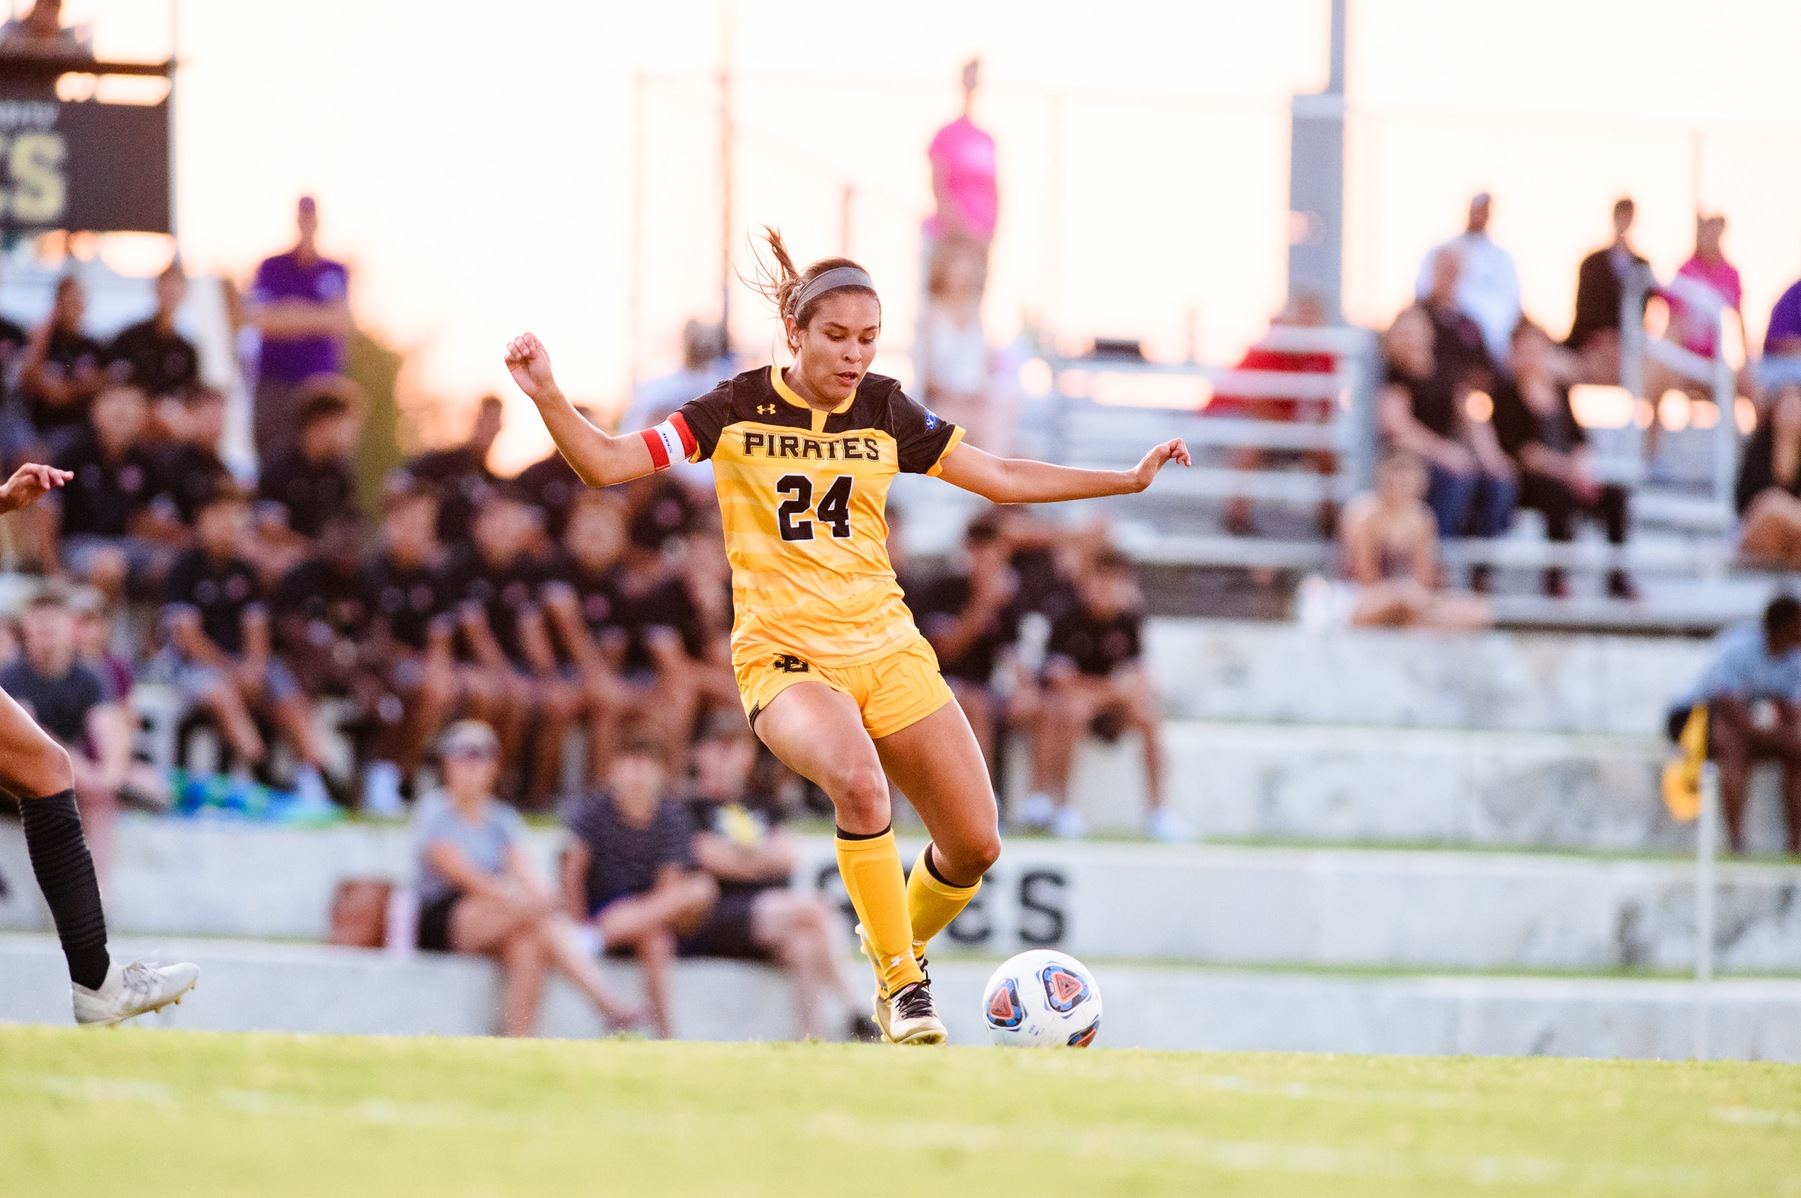 Reyna Scores Winning Goal Over St. Thomas